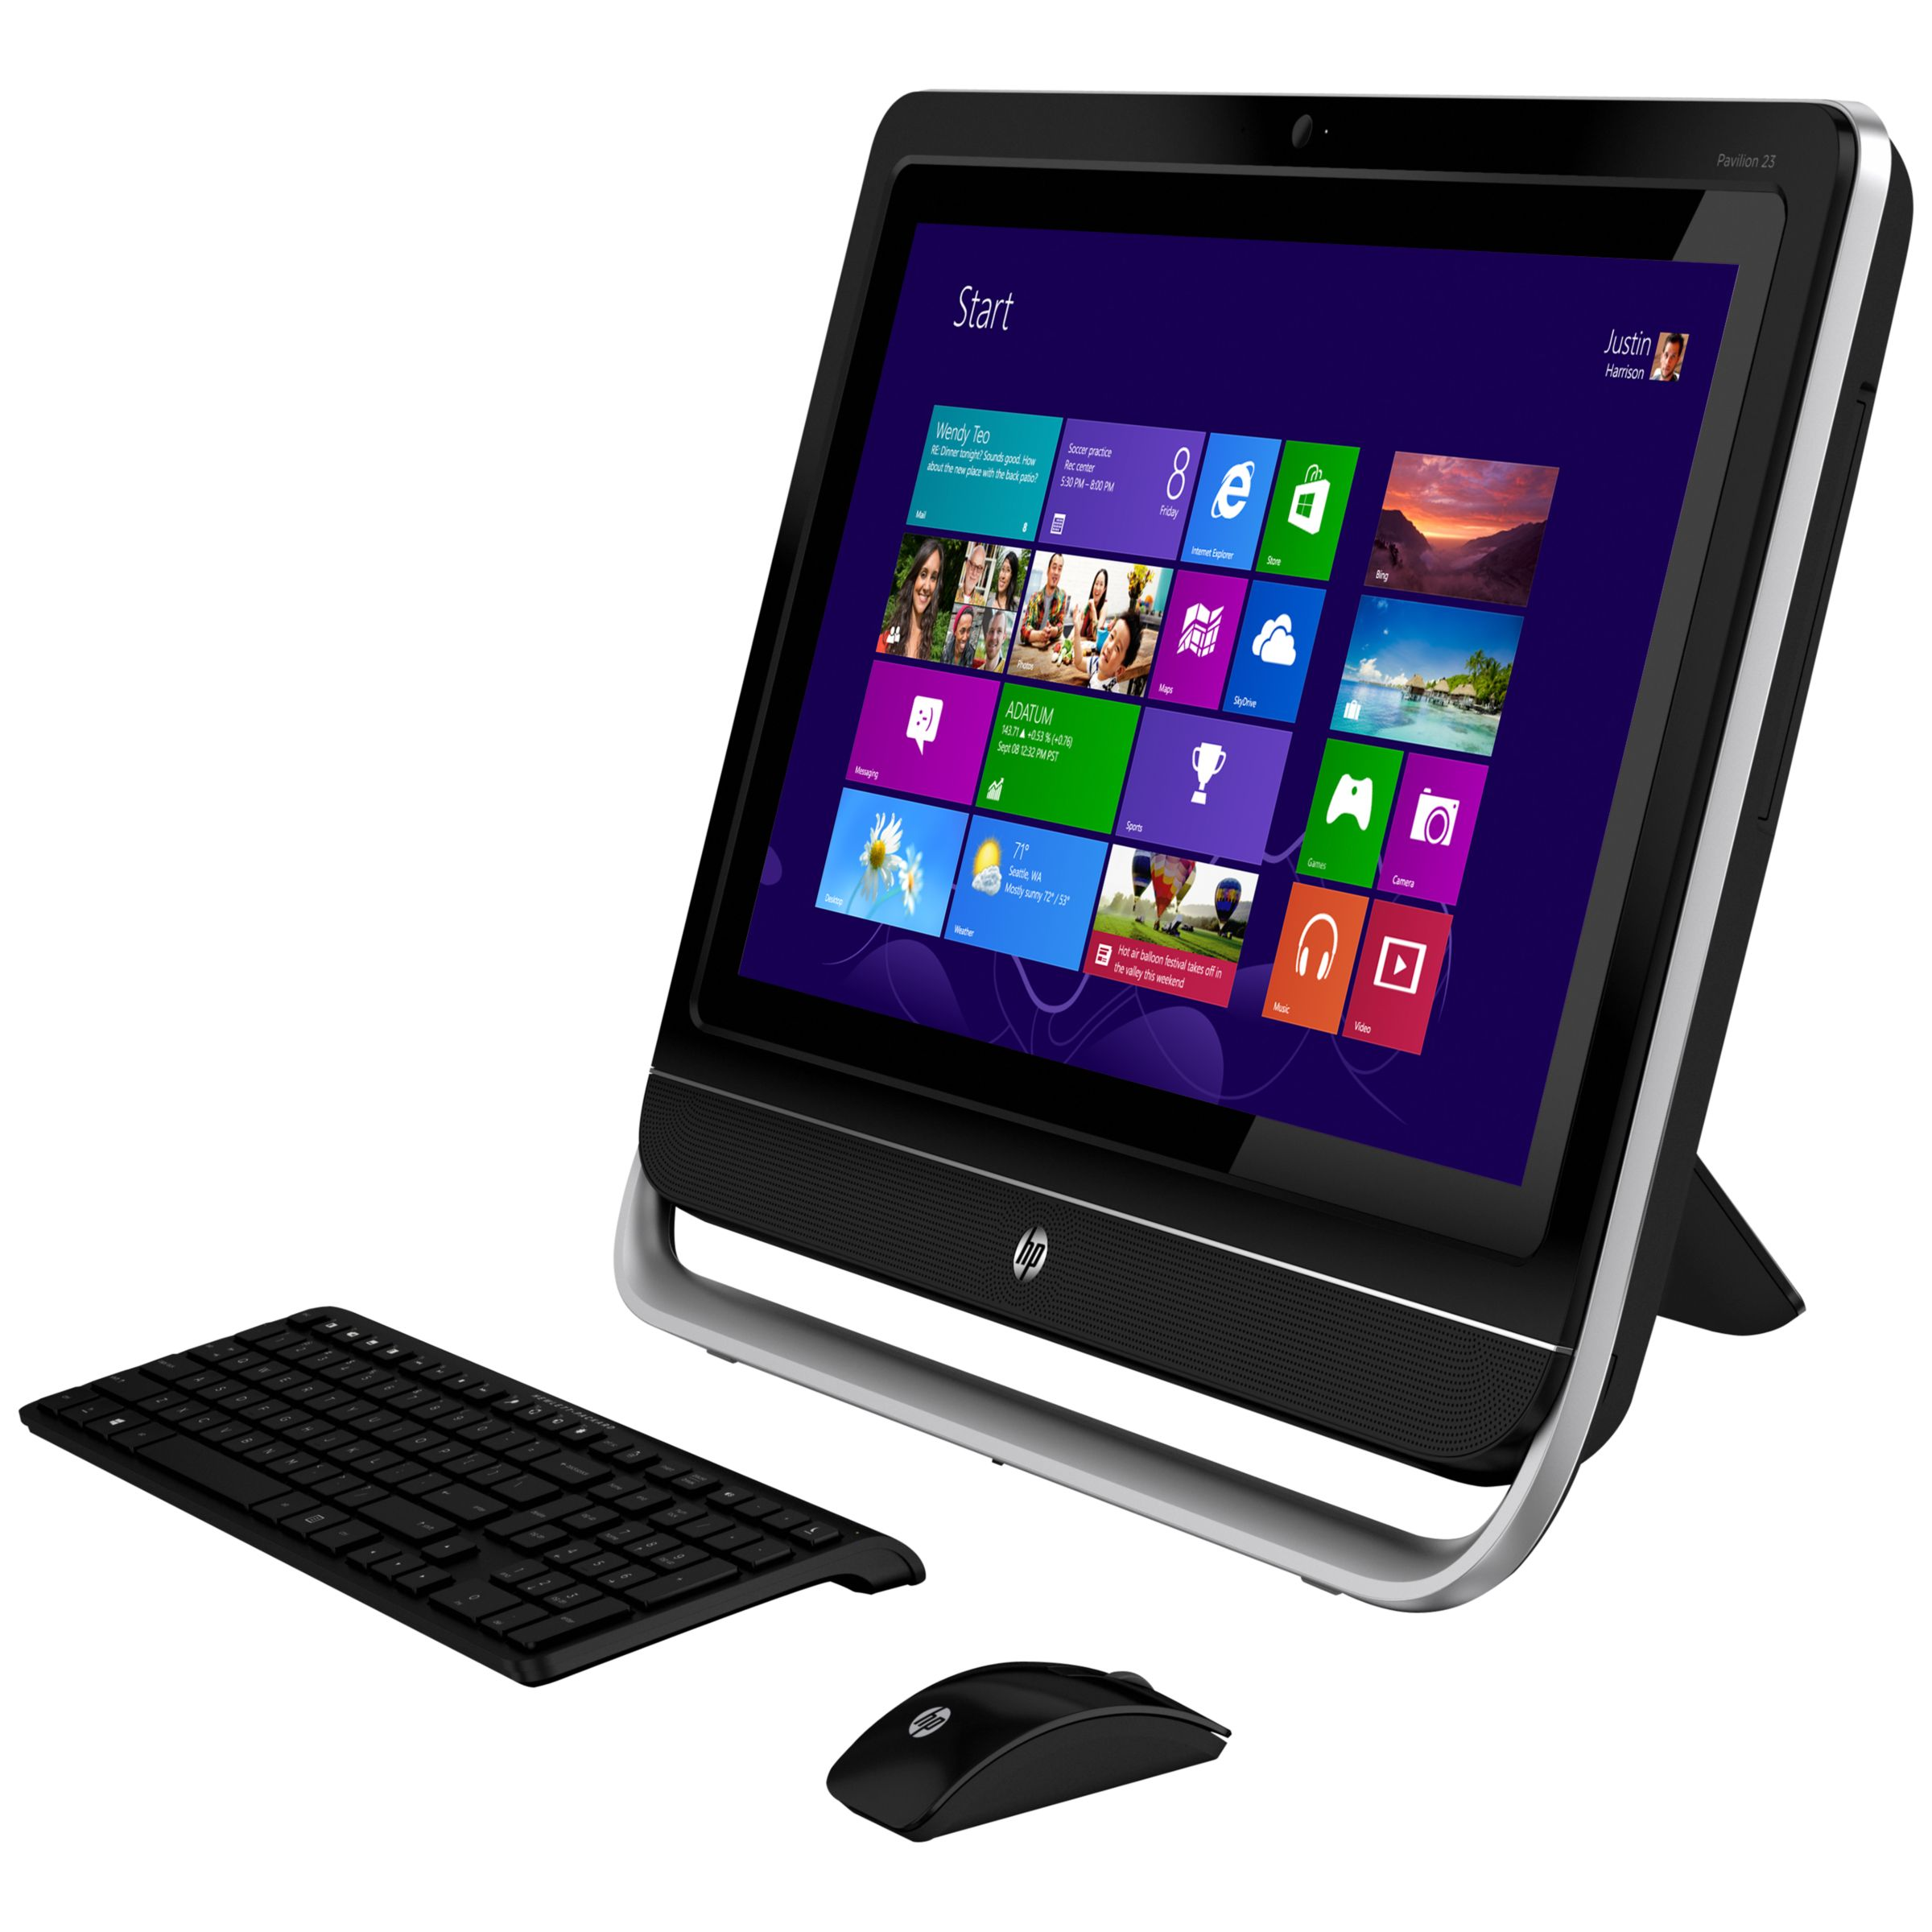 Top 30 cheapest Hp pavilion desktop UK prices - best deals ...